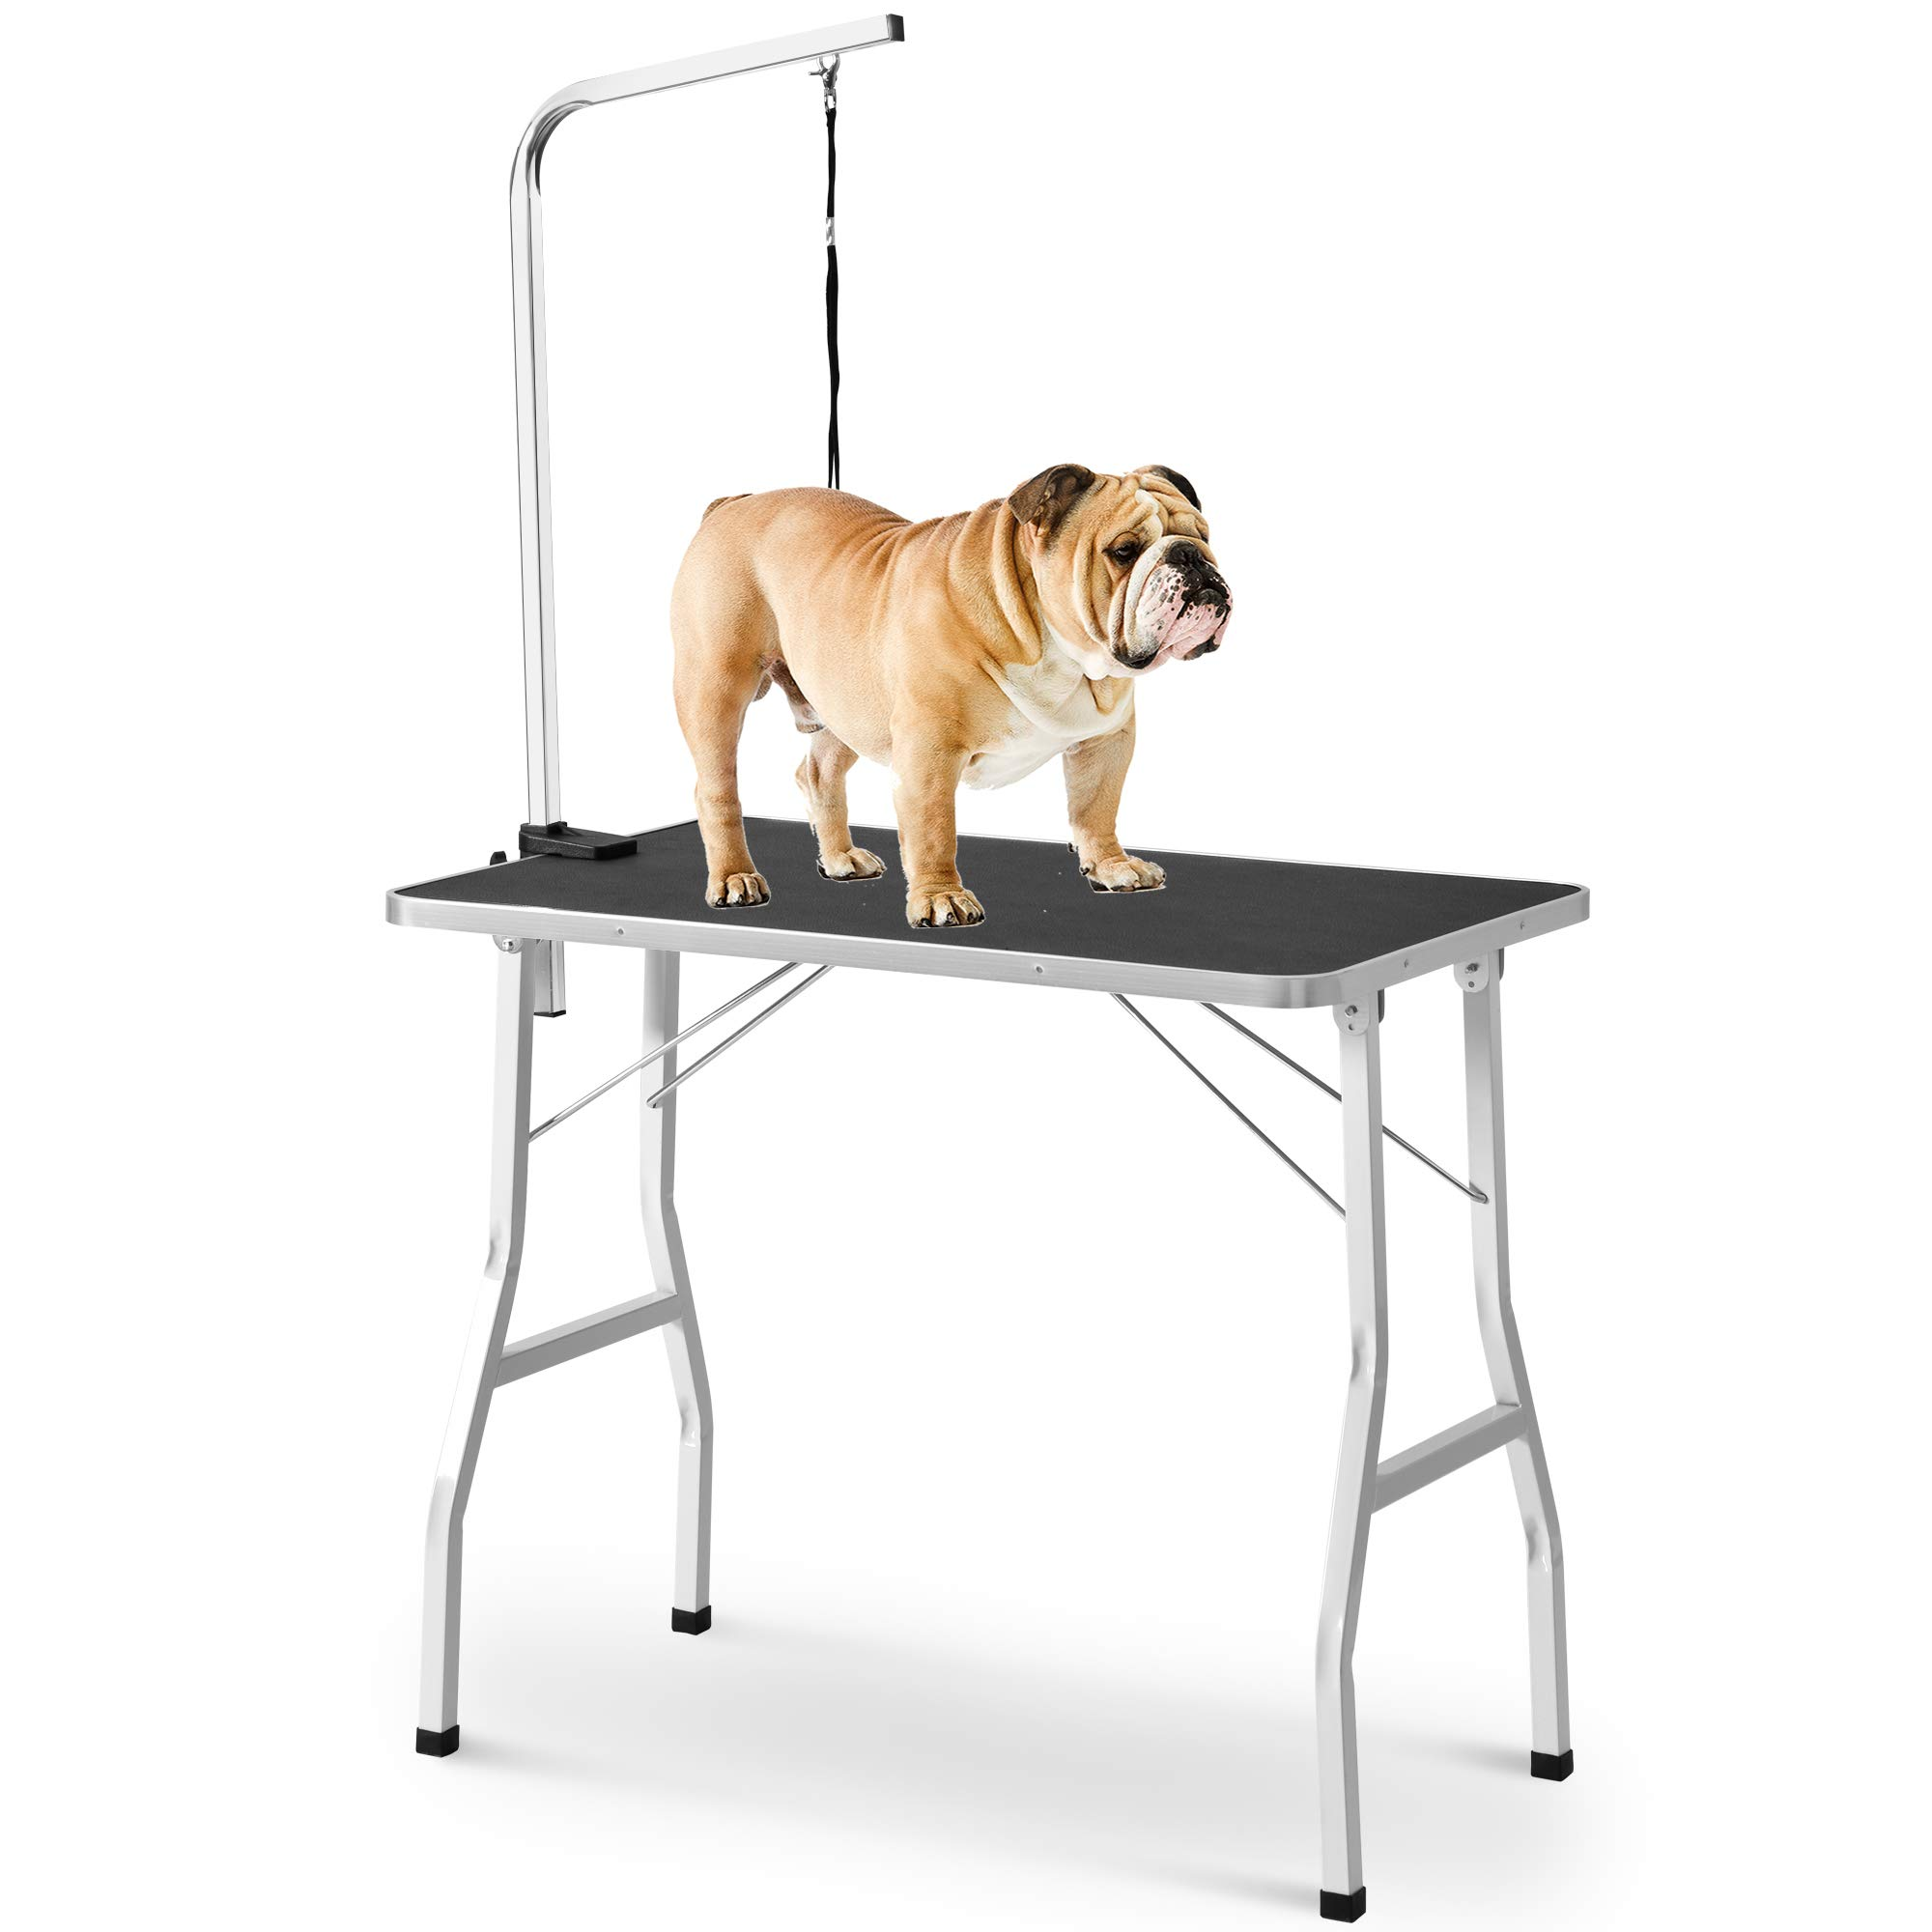 LZ LEISURE ZONE Dog Pet Grooming Table with Adjustable Arm and Noose (30'', Black)